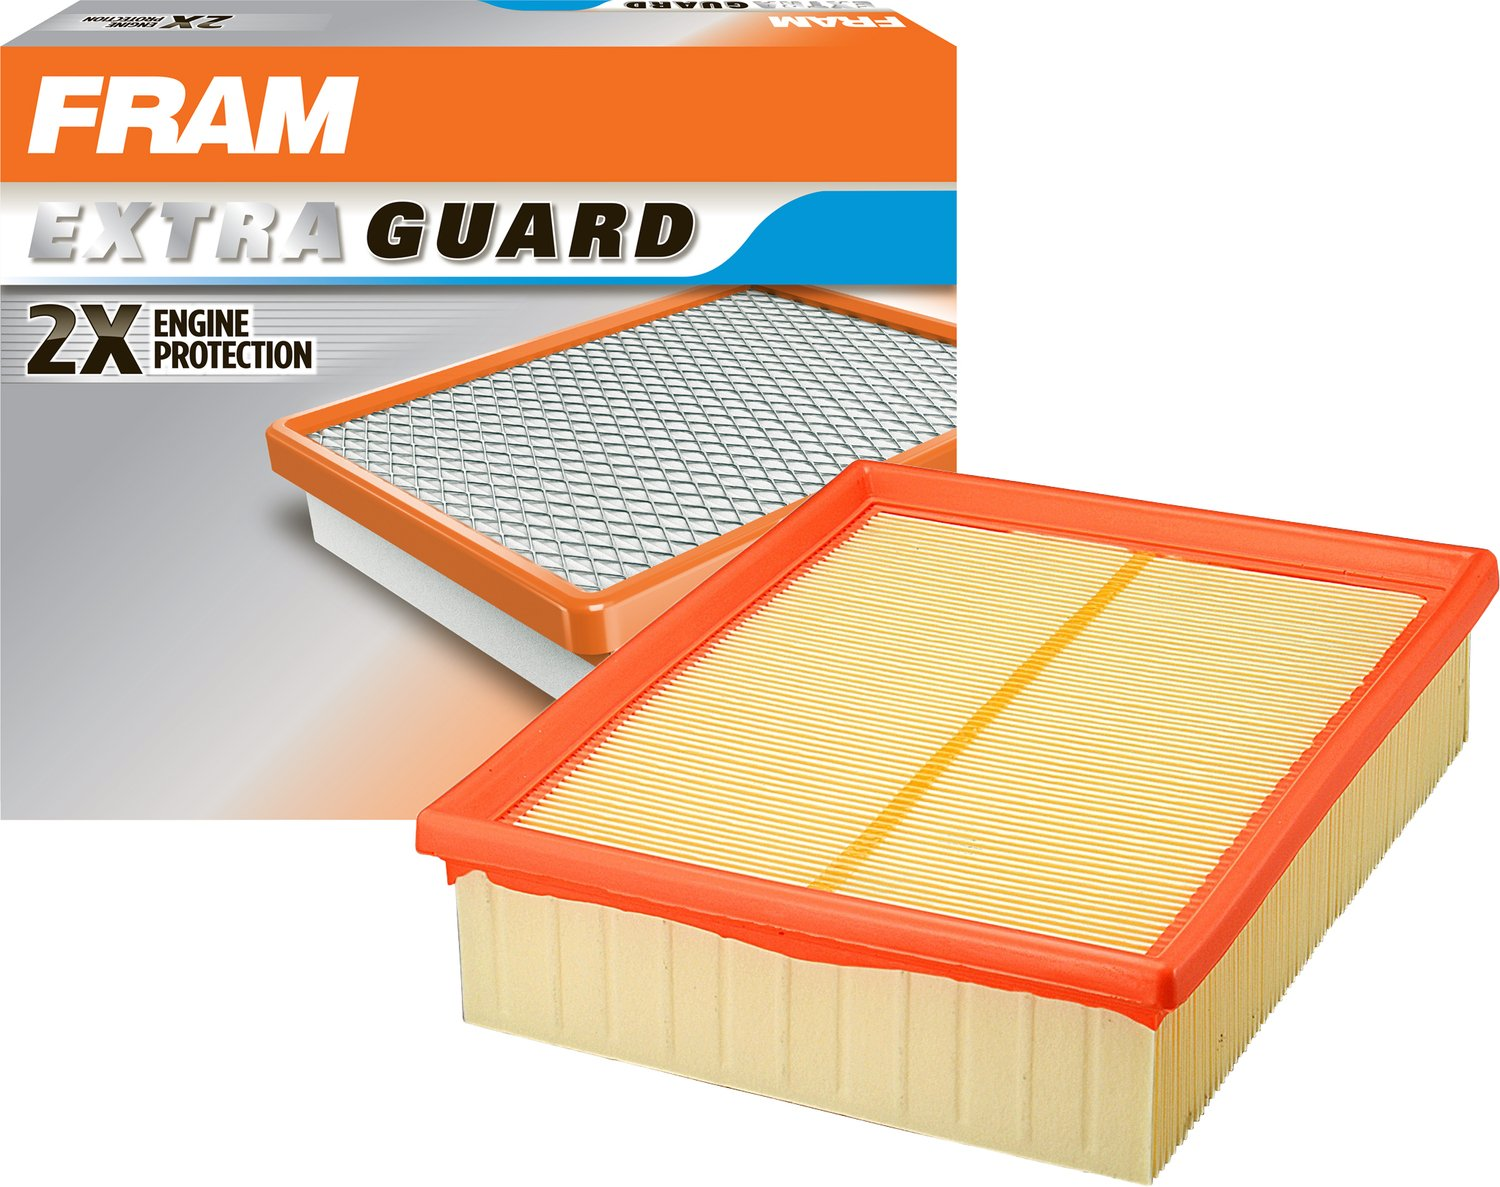 FRAM CA10083 Extra Guard Panel Air Filter